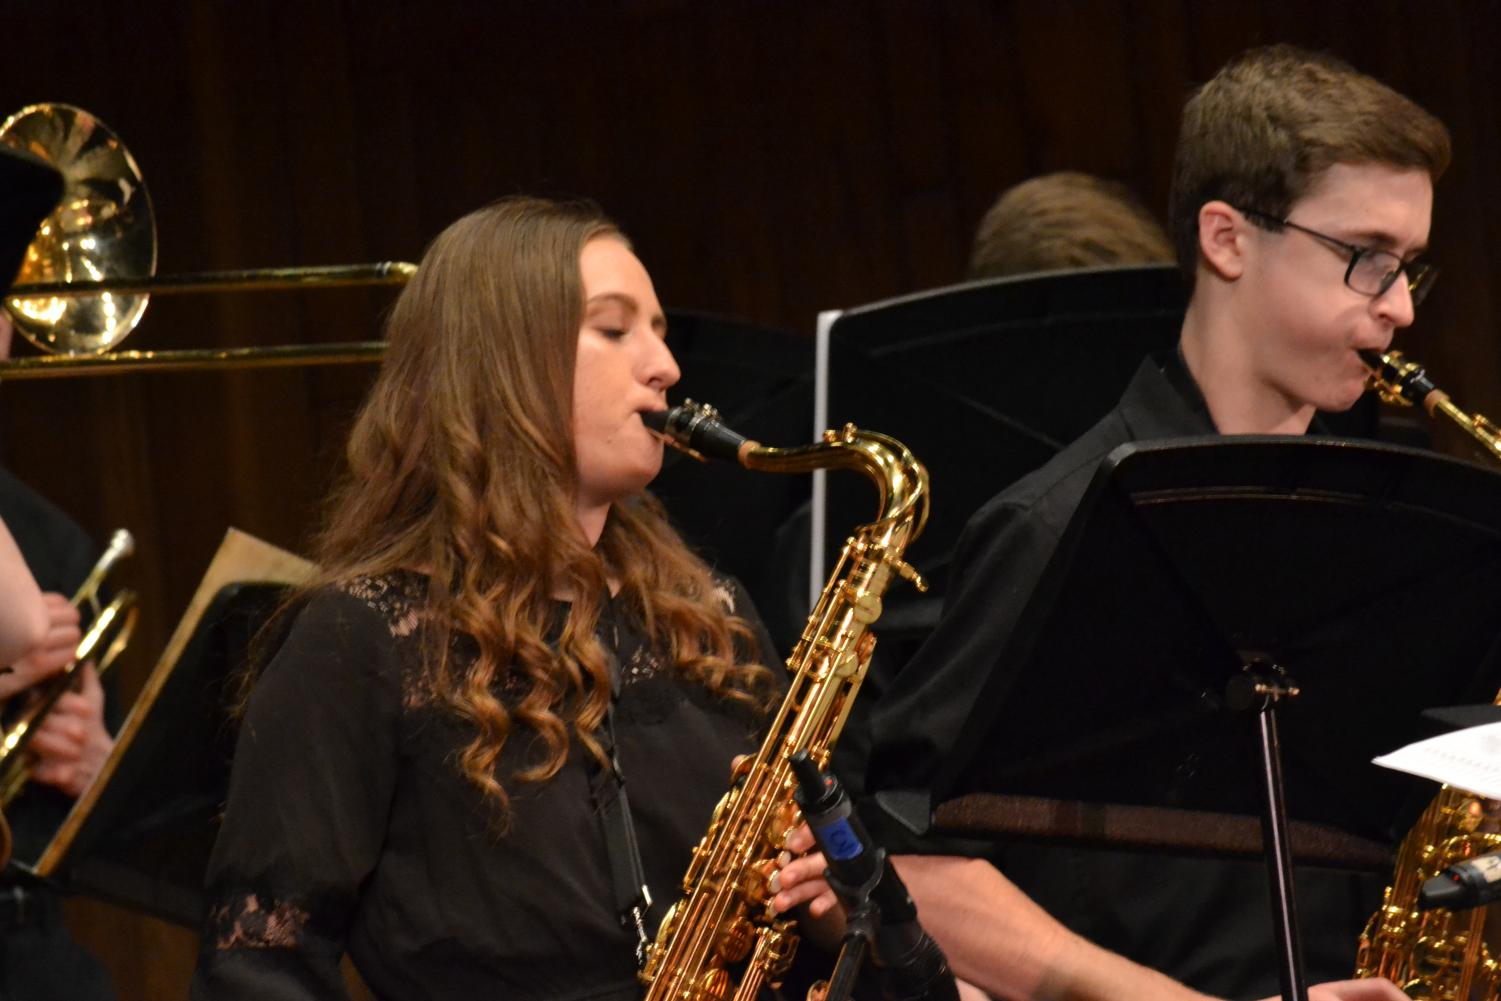 Seniors Morgan Fleck and Ian Brannan play their hearts out blowing into their tenor saxophones.